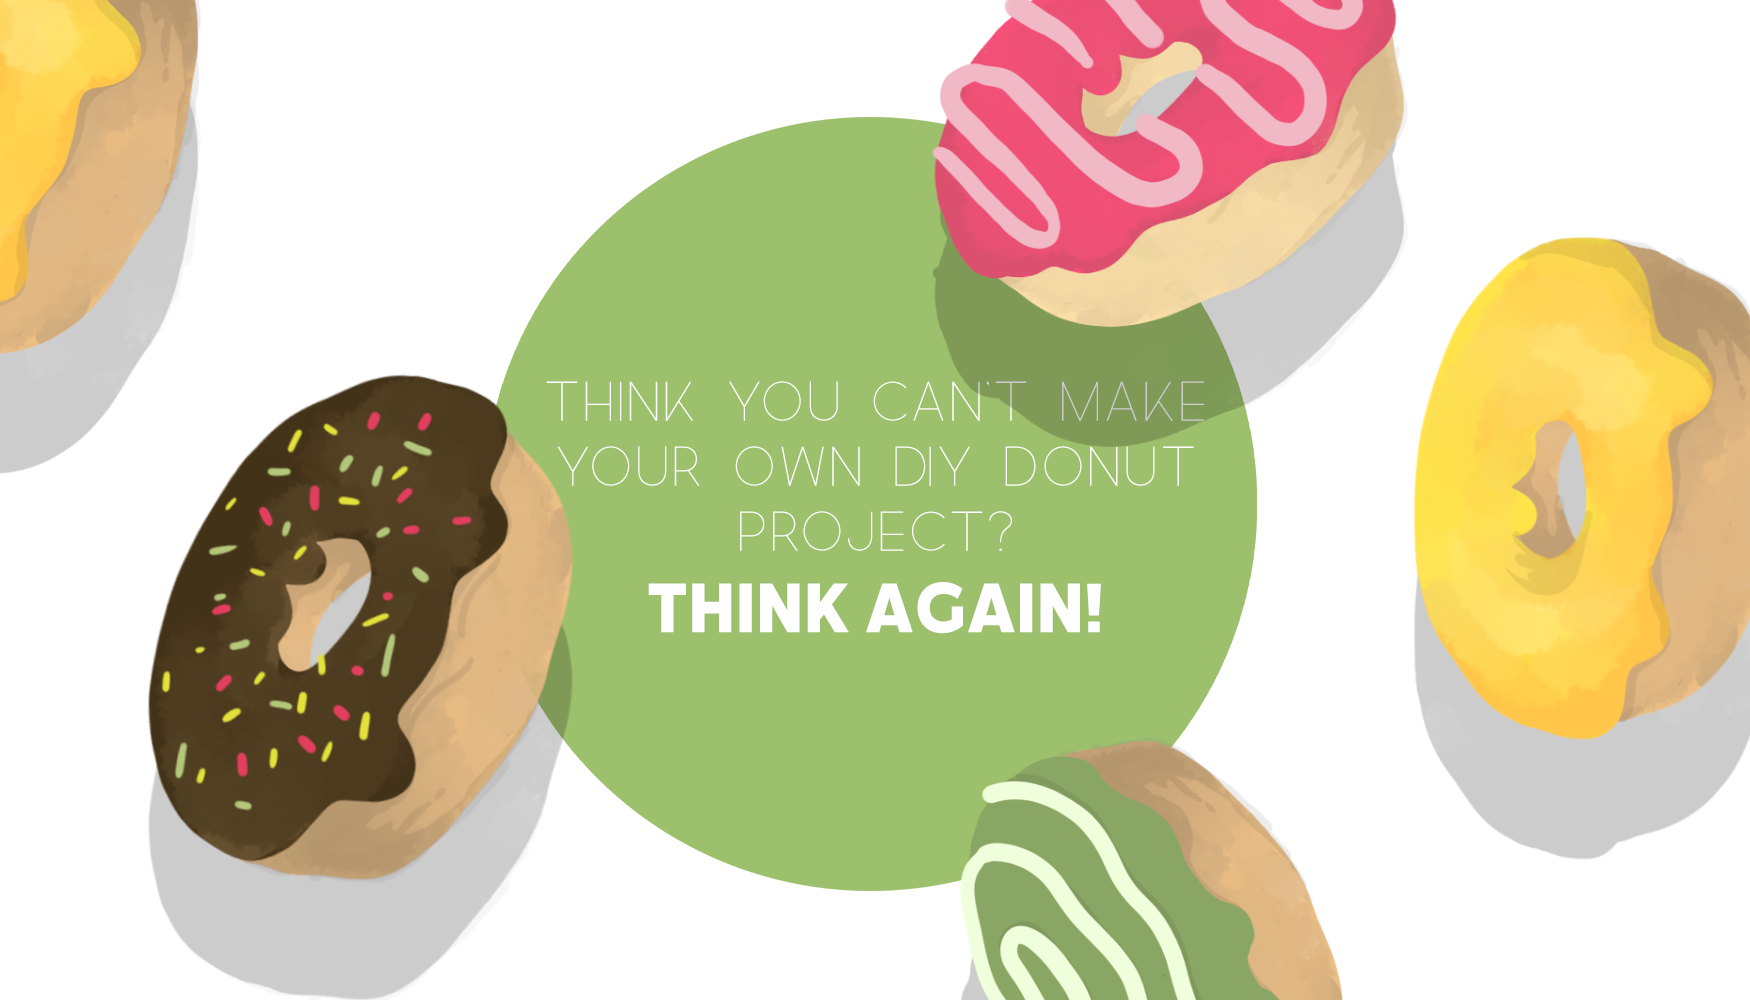 Think You Can't Make Your Own DIY Donut Project? Think Again!